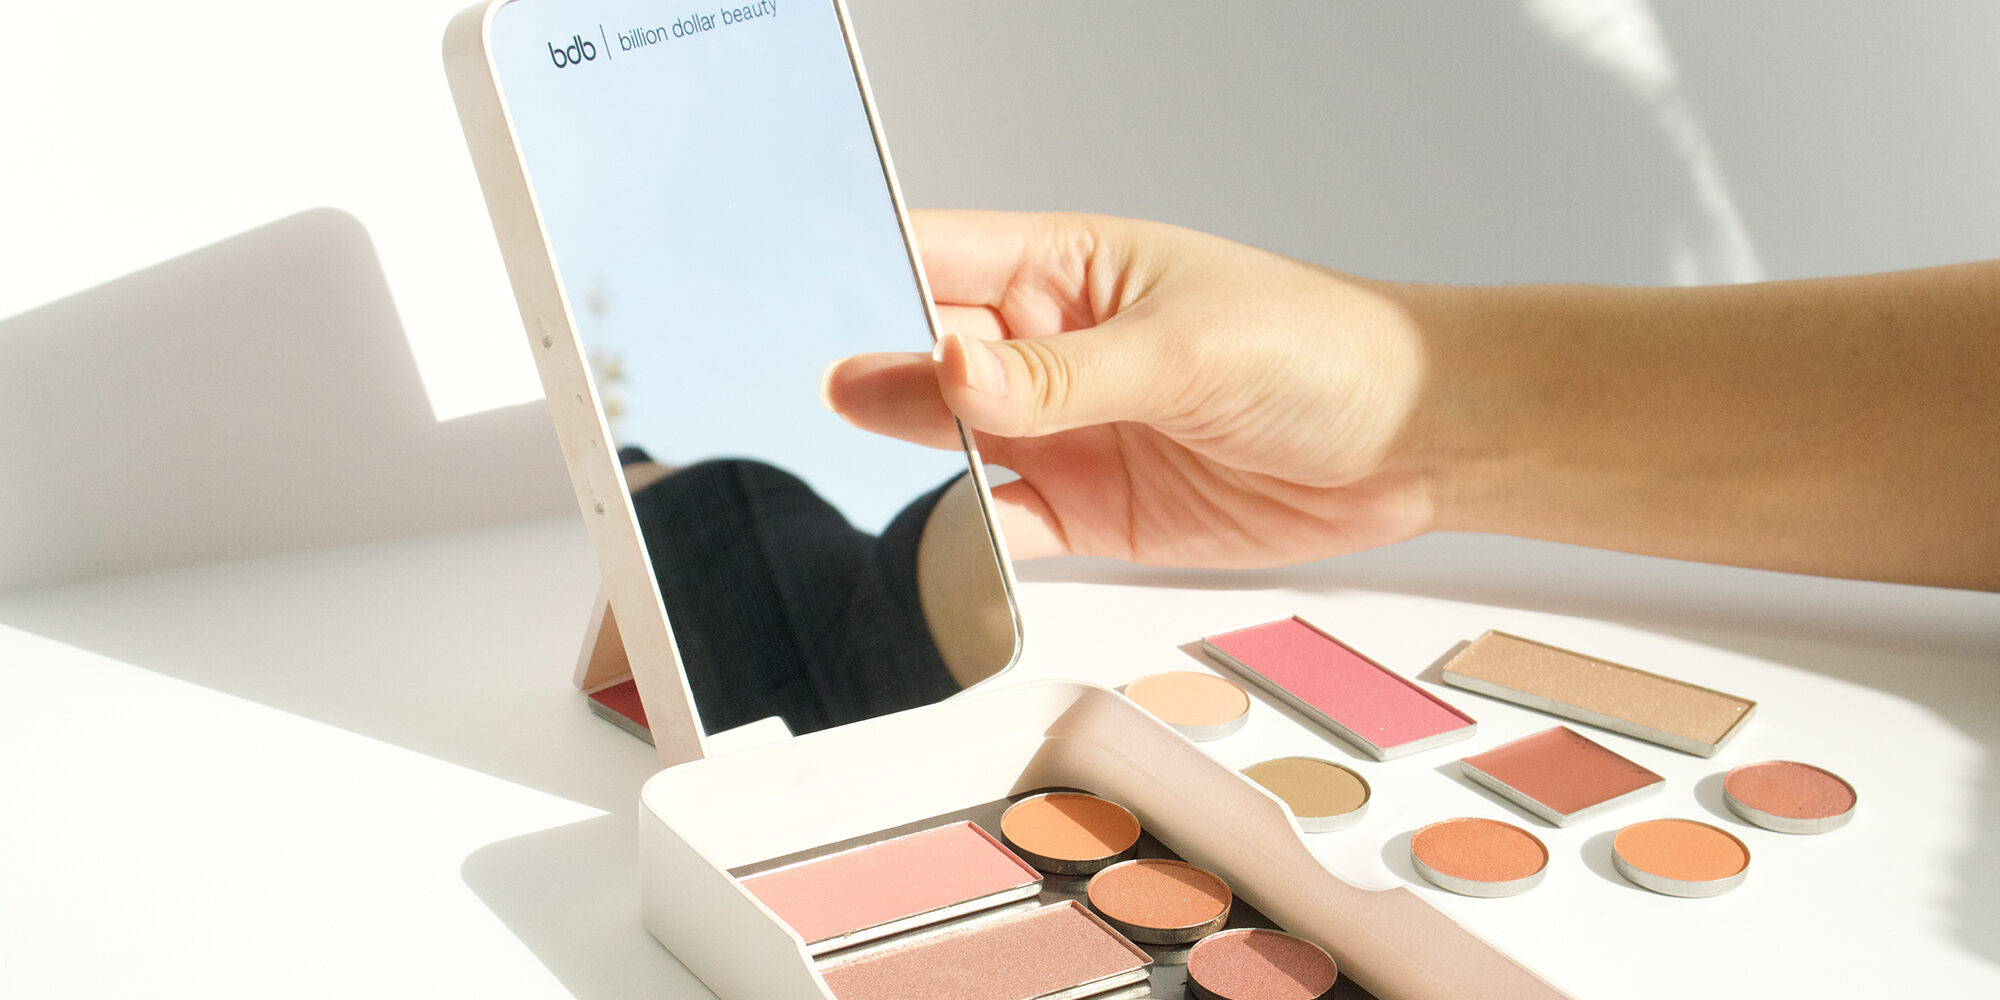 In A First For The Mass Market, Billion Dollar Beauty Is Launching A Customizable Makeup Palette At Target